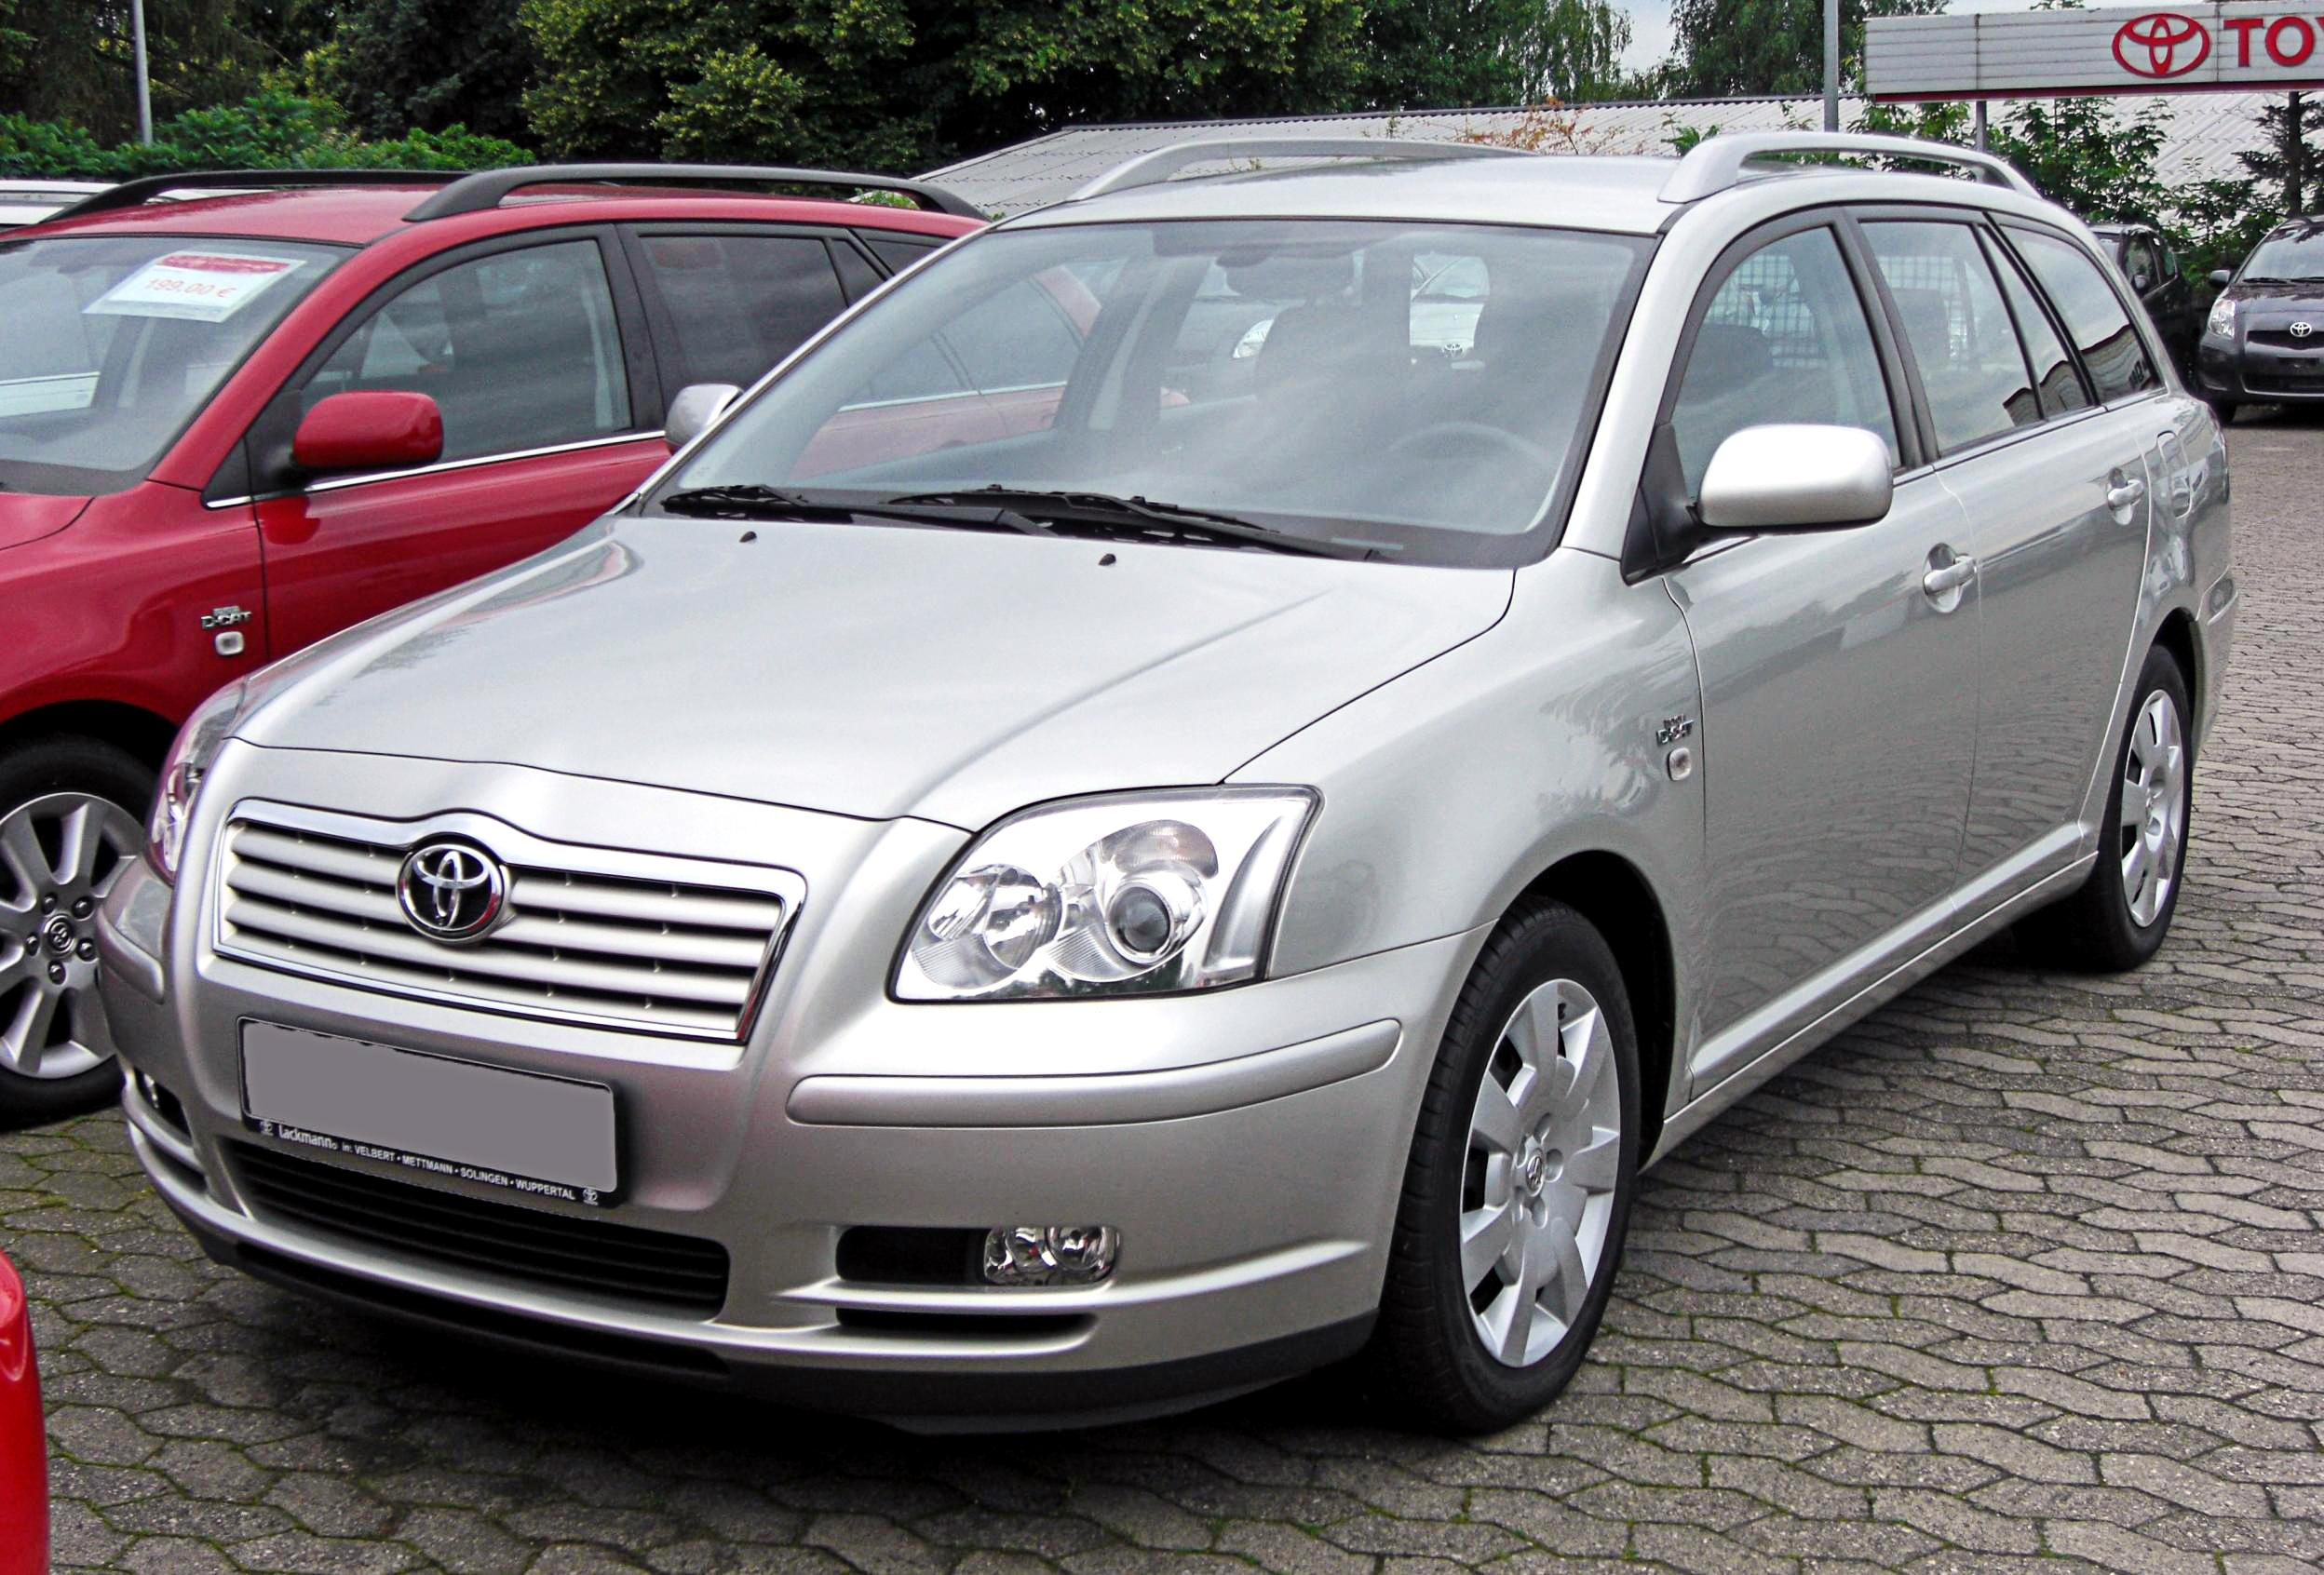 2003 toyota avensis 2 0 di related infomation specifications weili automotive network. Black Bedroom Furniture Sets. Home Design Ideas